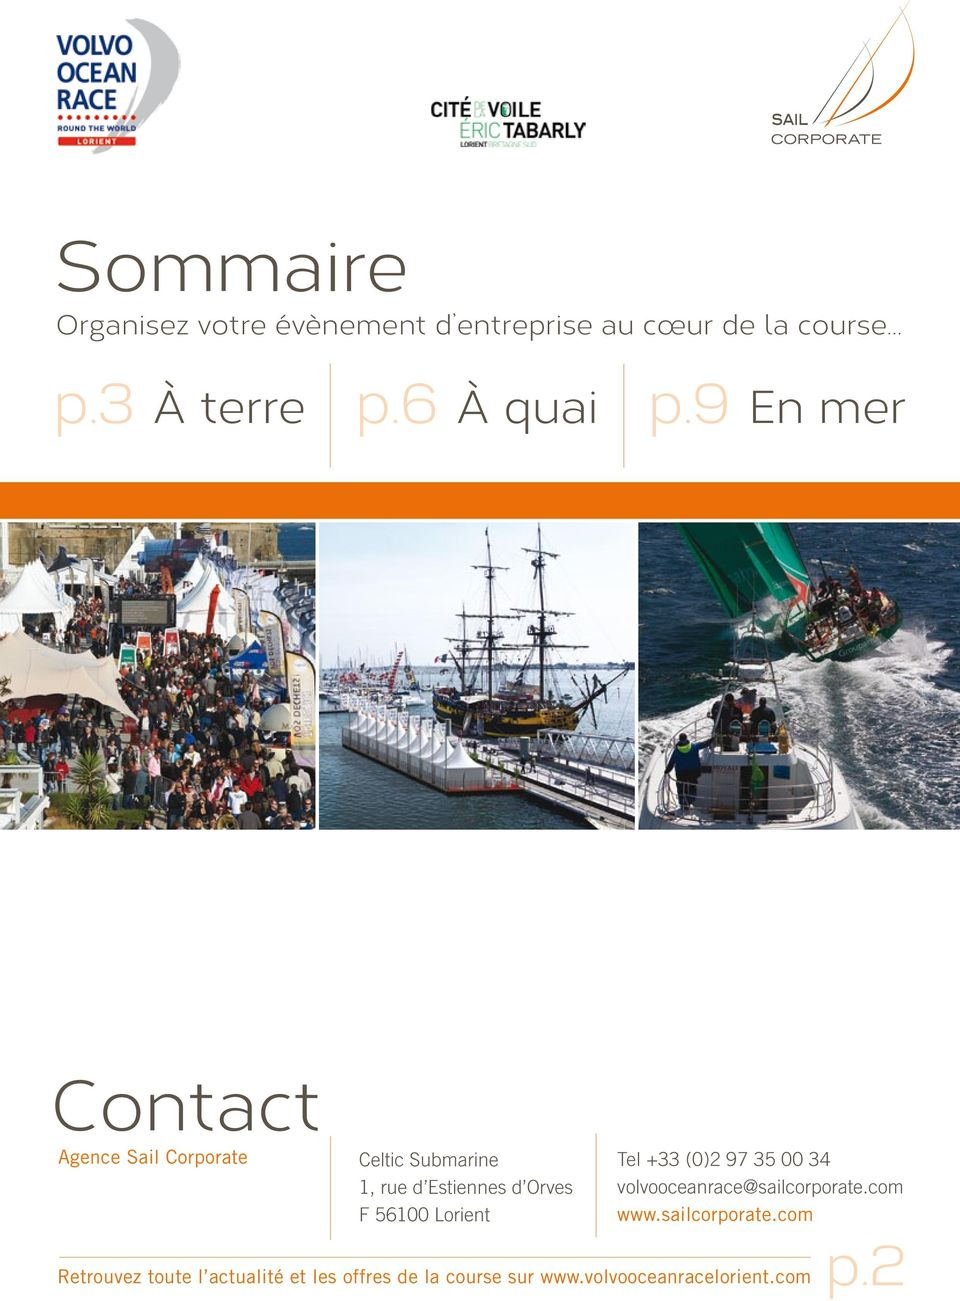 9 En mer Contact Agence Sail Corporate Celtic Submarine 1, rue d Estiennes d Orves F 56100